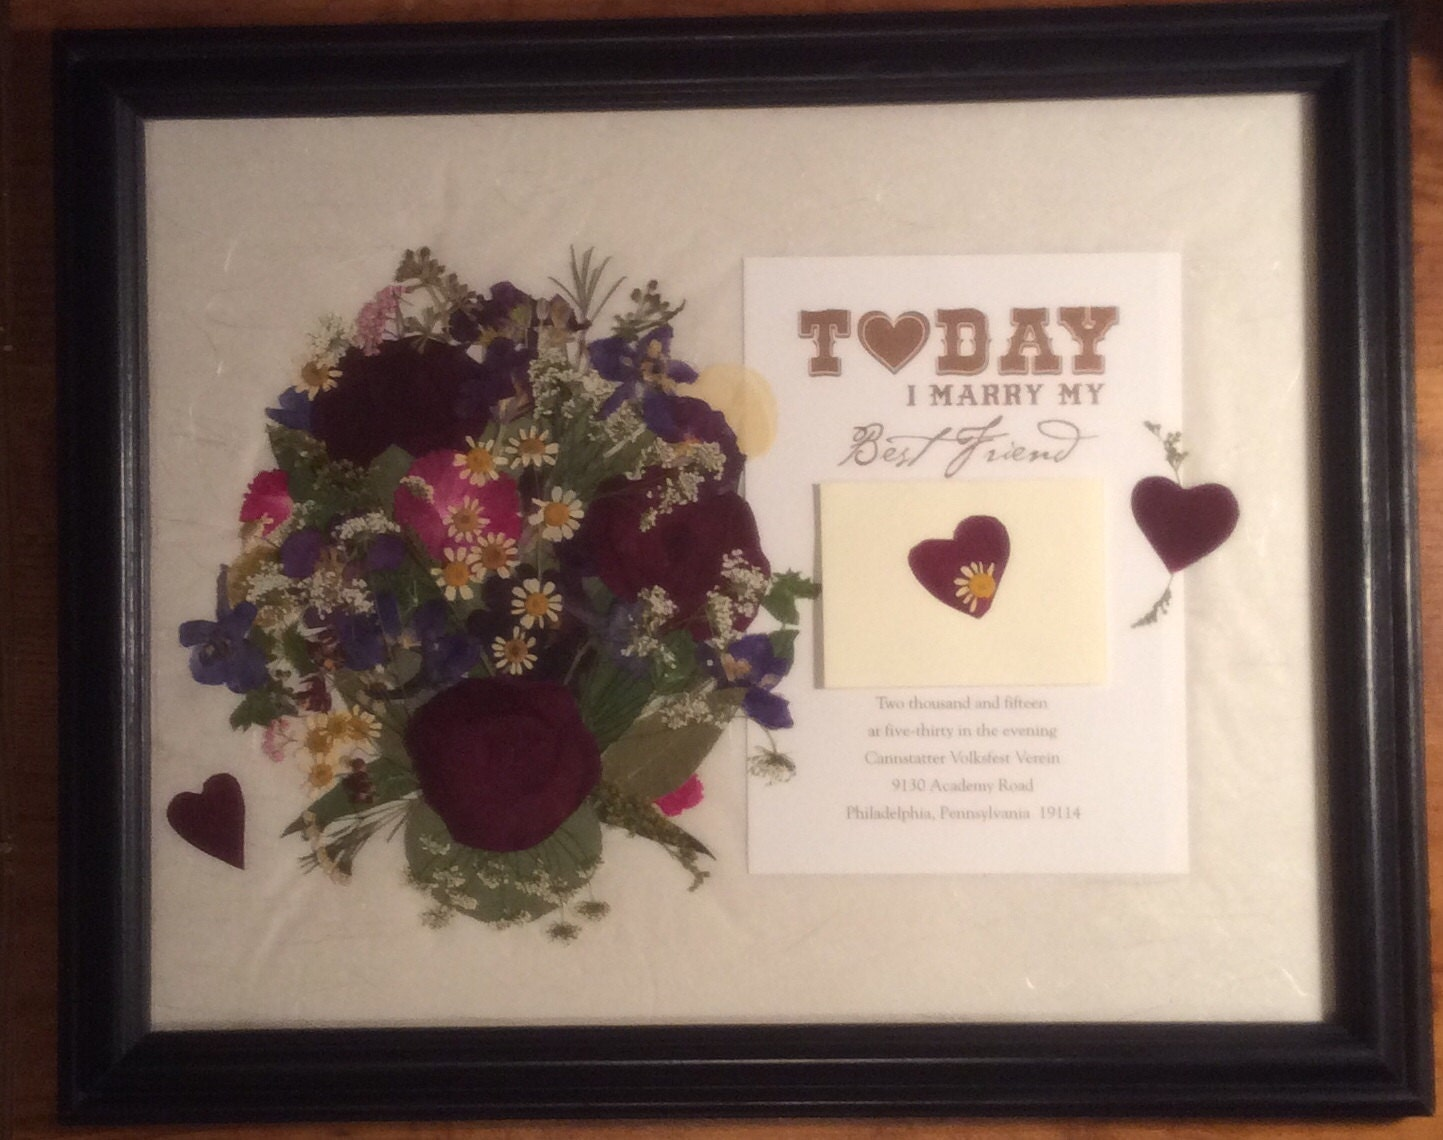 Framed Wedding Invitation Pressed Flower Framed Wedding Keepsake ...